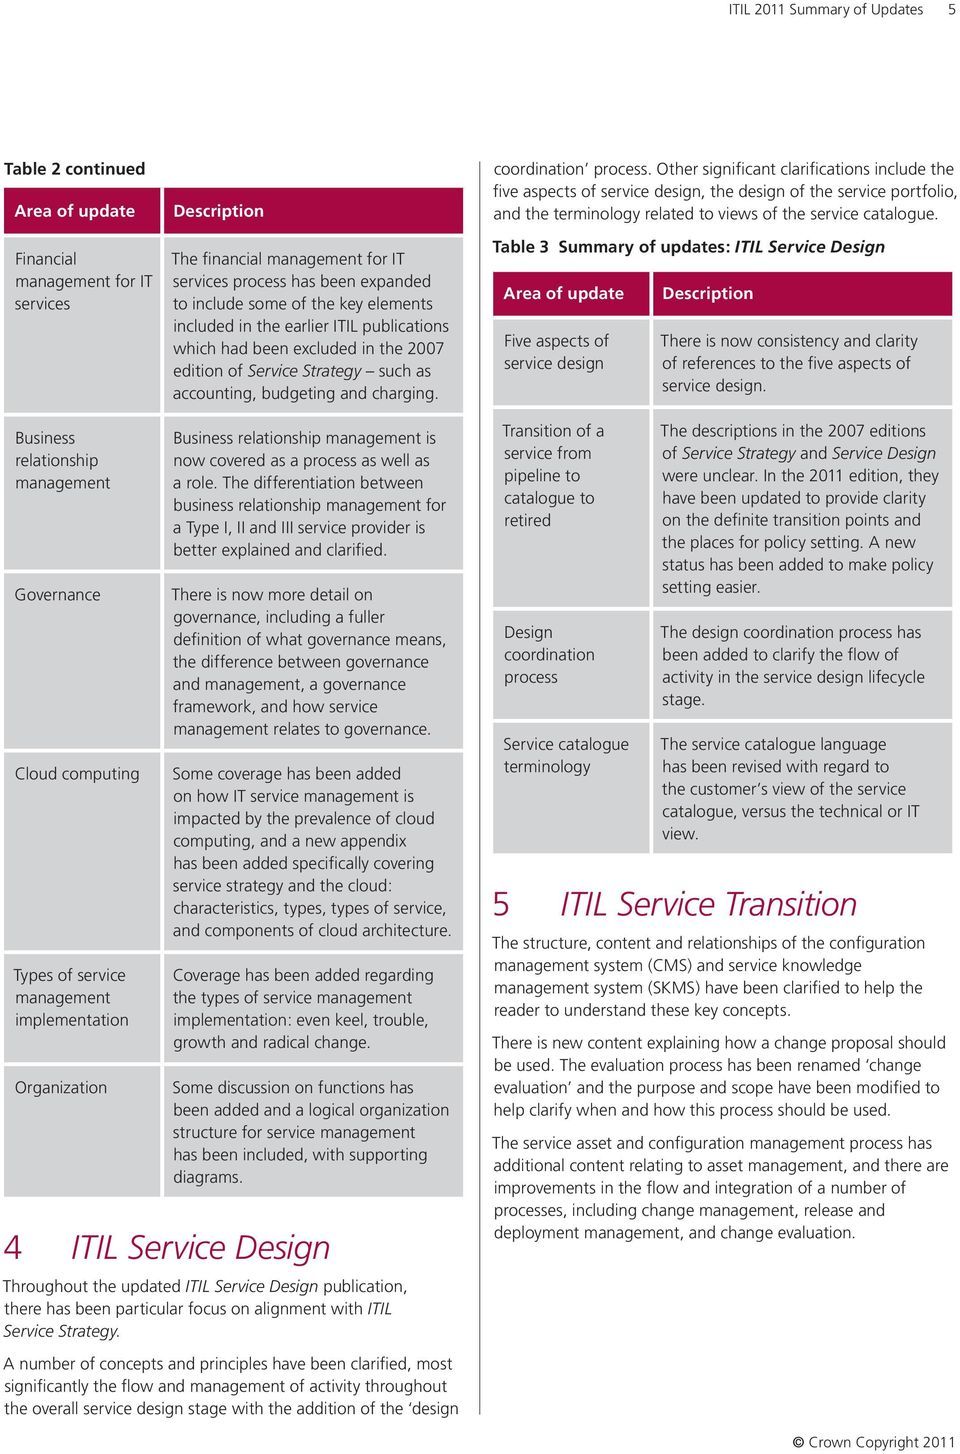 Other significant clarifications include the five aspects of service design, the design of the service portfolio, and the terminology related to views of the service catalogue.